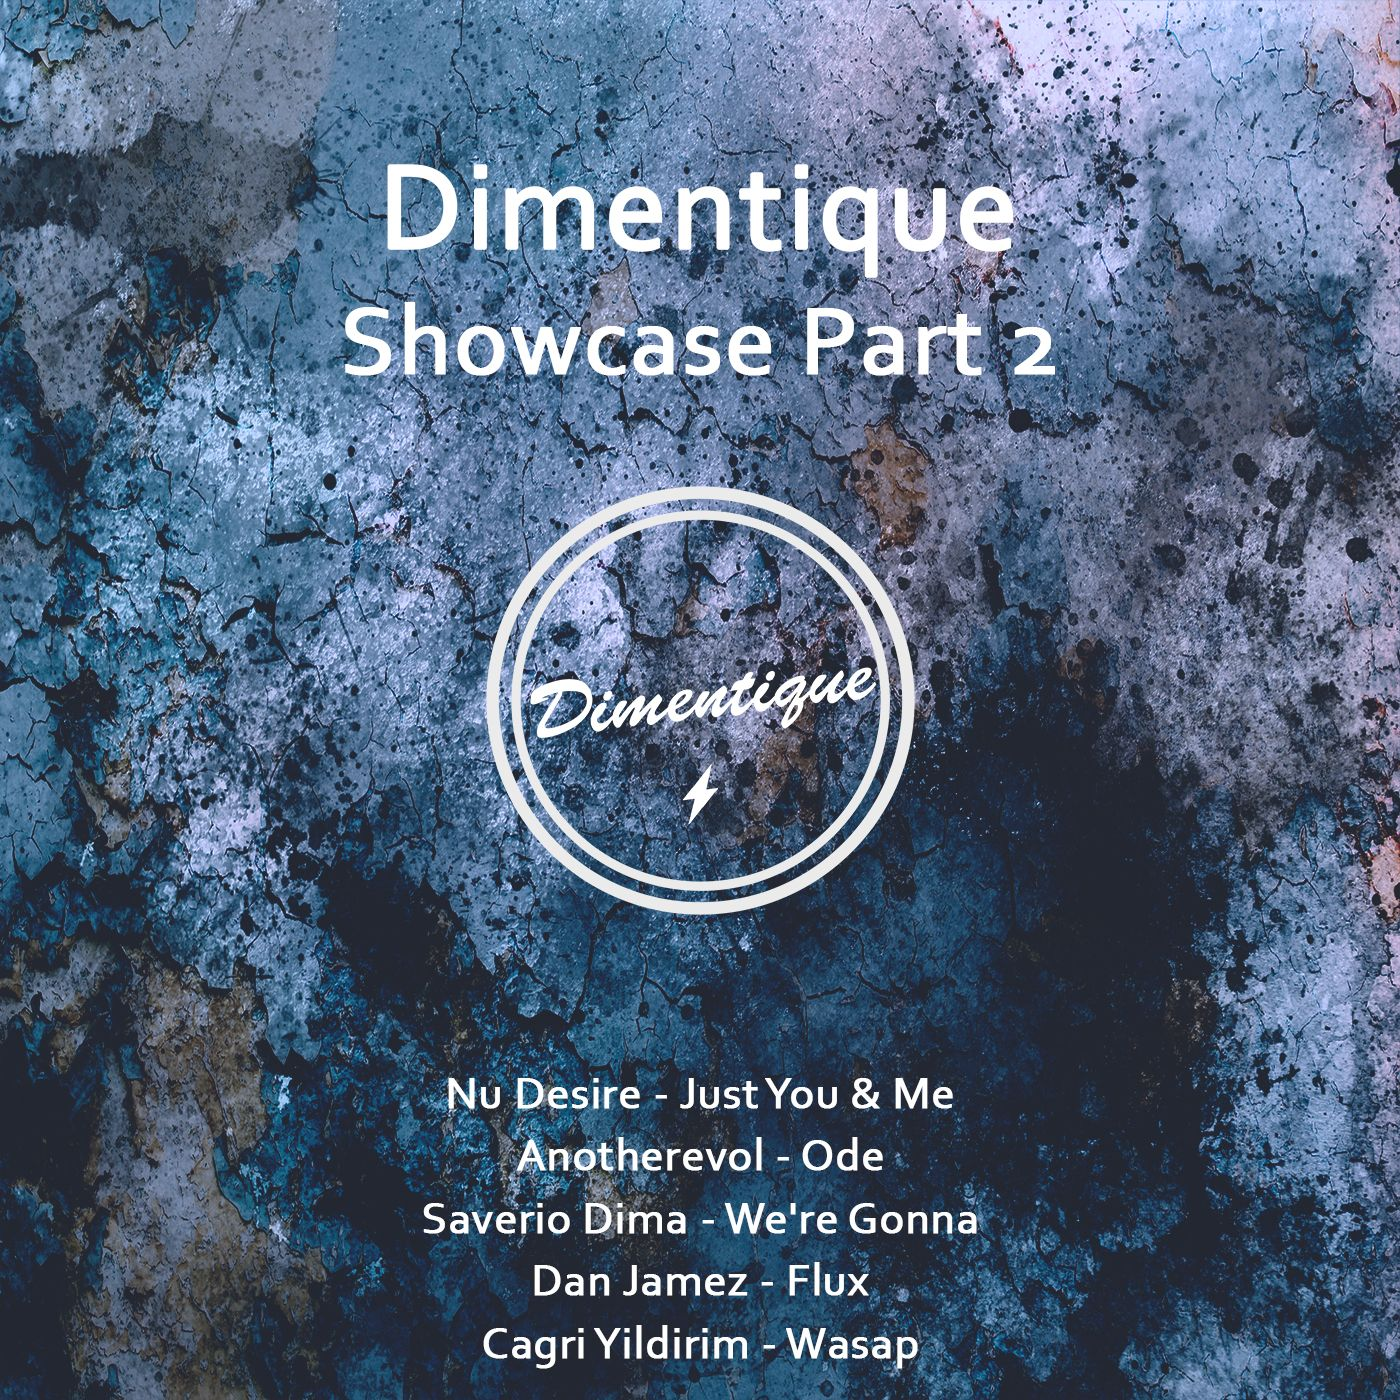 dimentique_new_art_2015_showcase_2.jpg